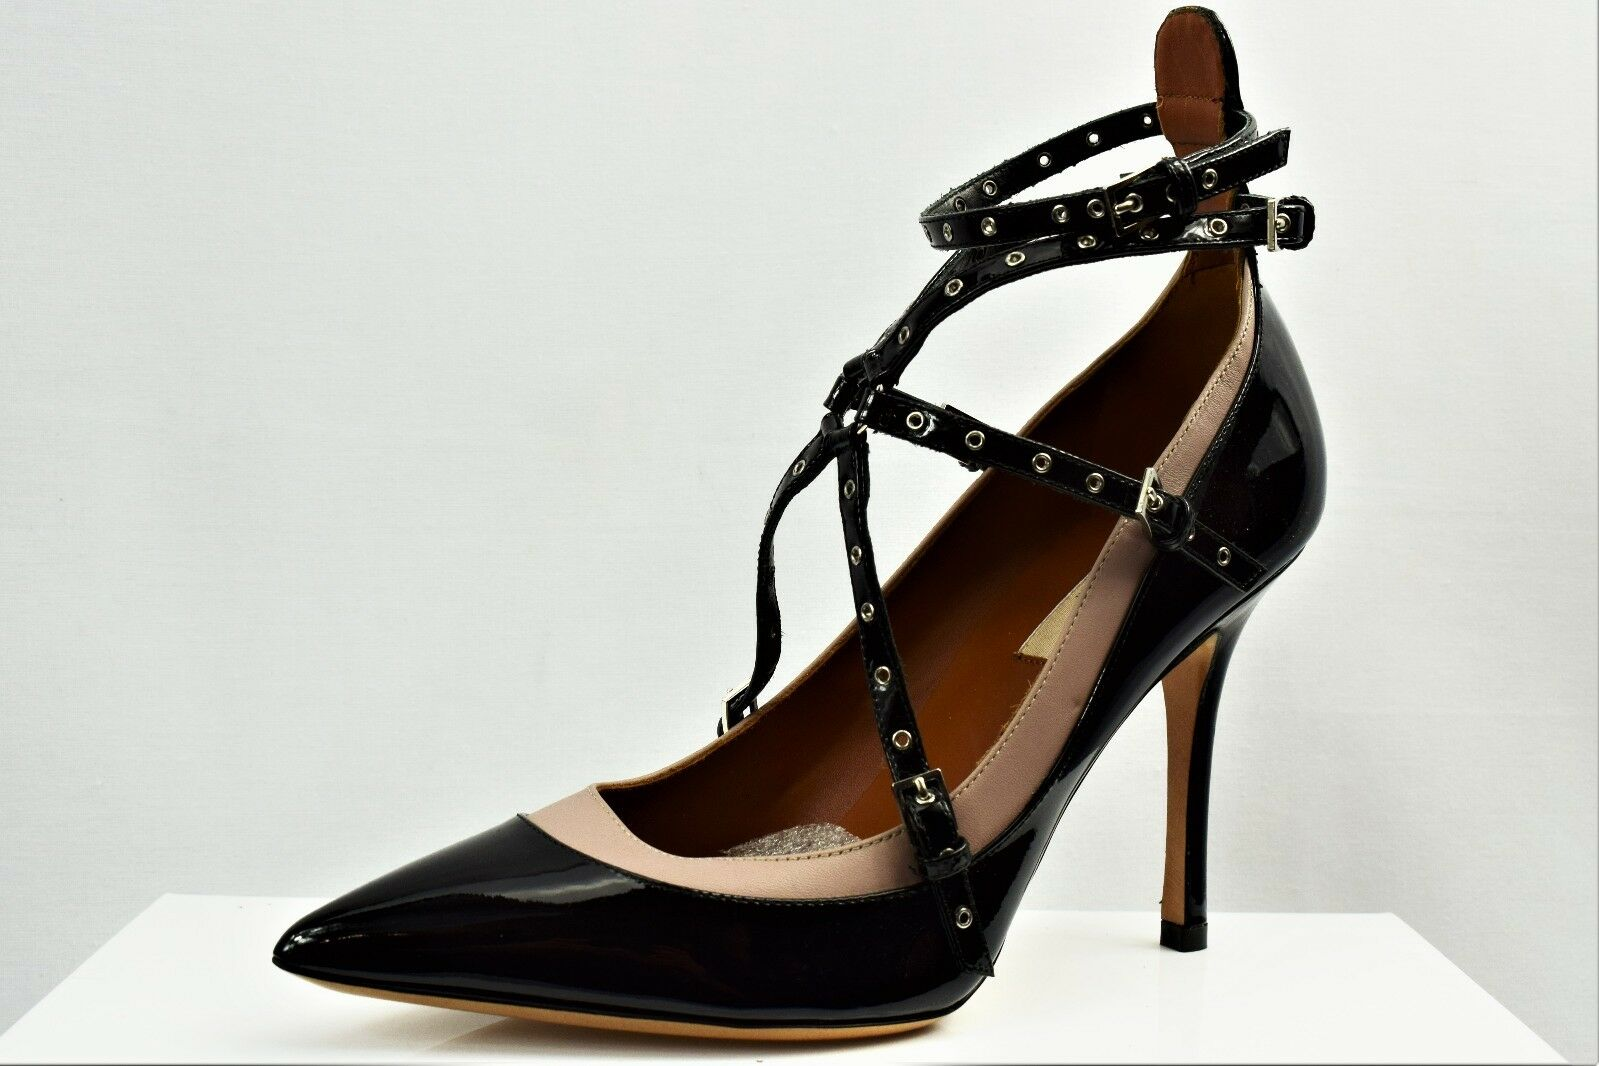 VALENTINO LOVE LATCH UK LEATHER PUMPS LADIES HIGH HEELS SIZE UK LATCH 4.5 (AJ8) b3e1a6